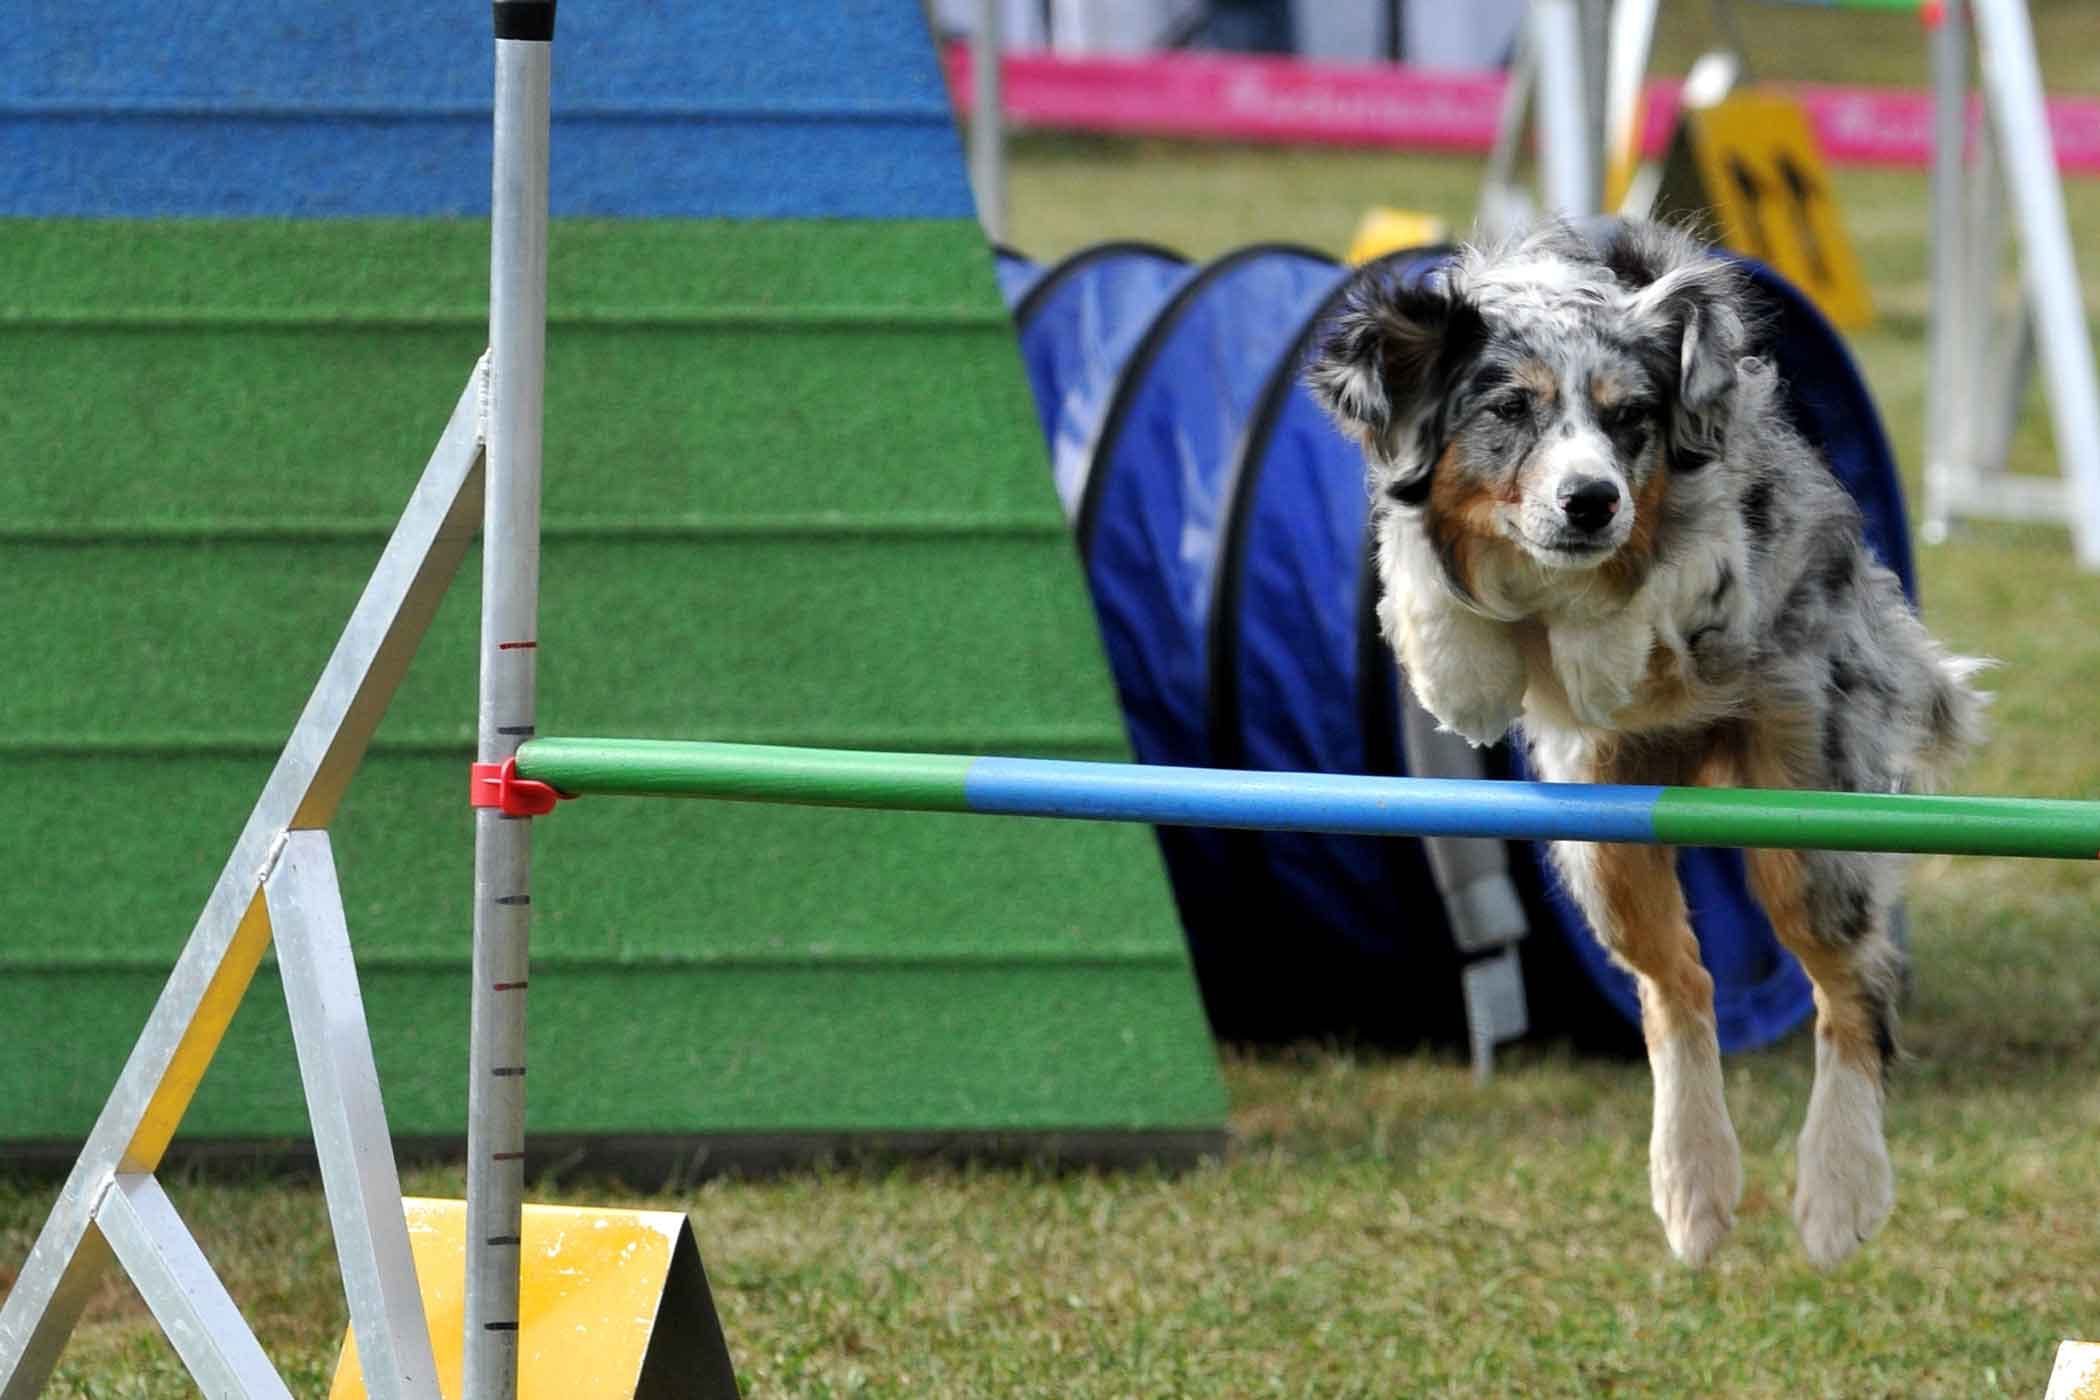 How To Train Your Dog To Run An Obstacle Course